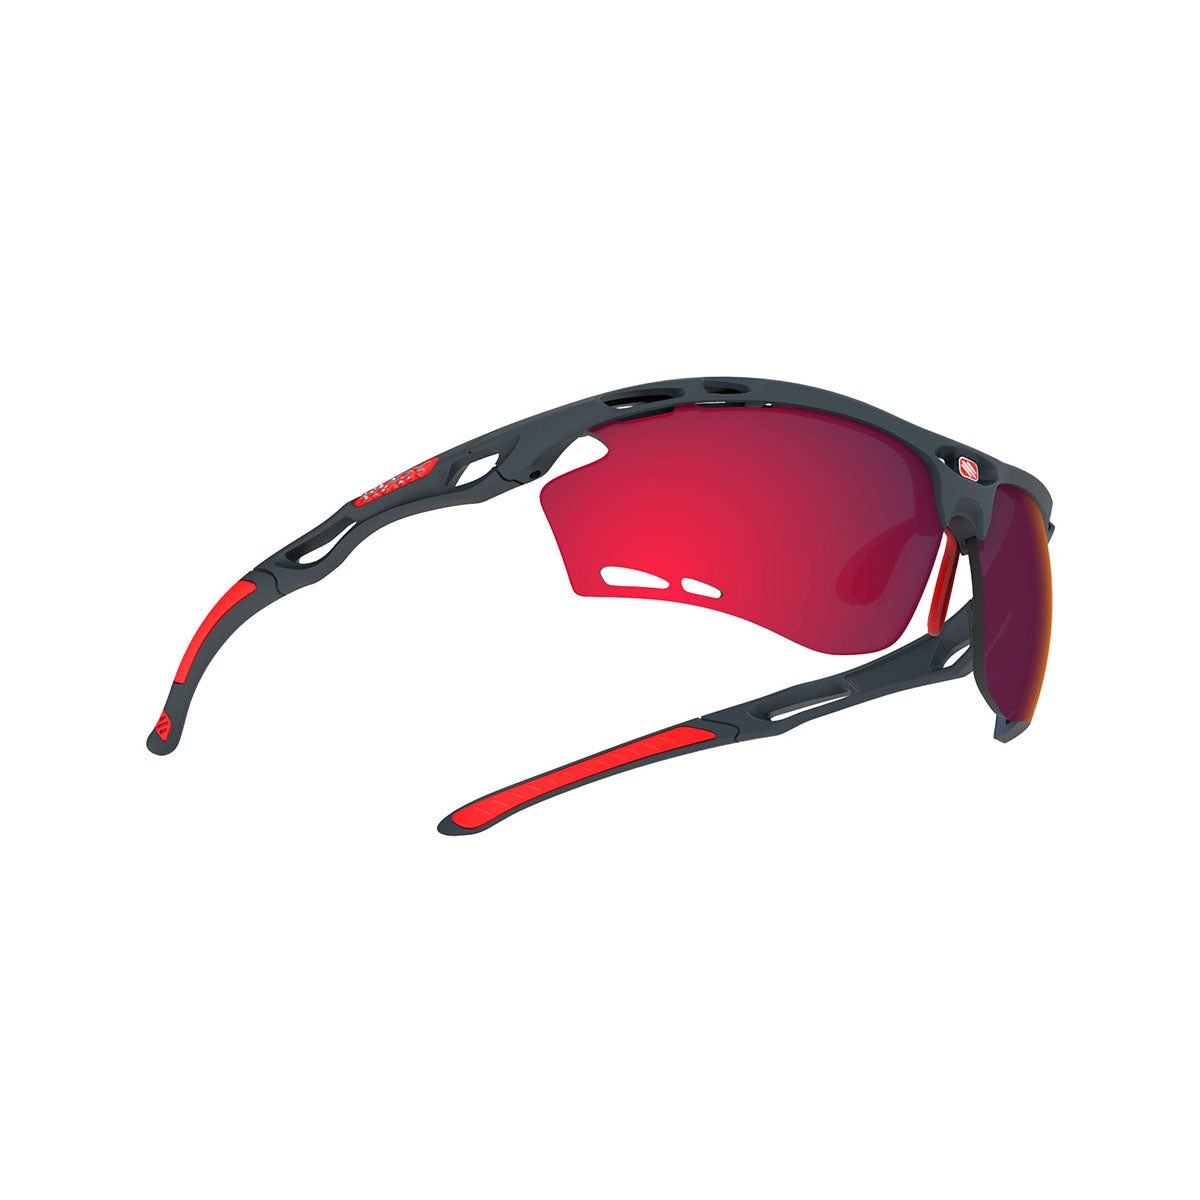 Rudy Project - Propulse - frame color: Charcoal Matte - lens color: Multilaser Red - Bumper Color:  - photo angle: Bottom Front Angle Variant Hover Image